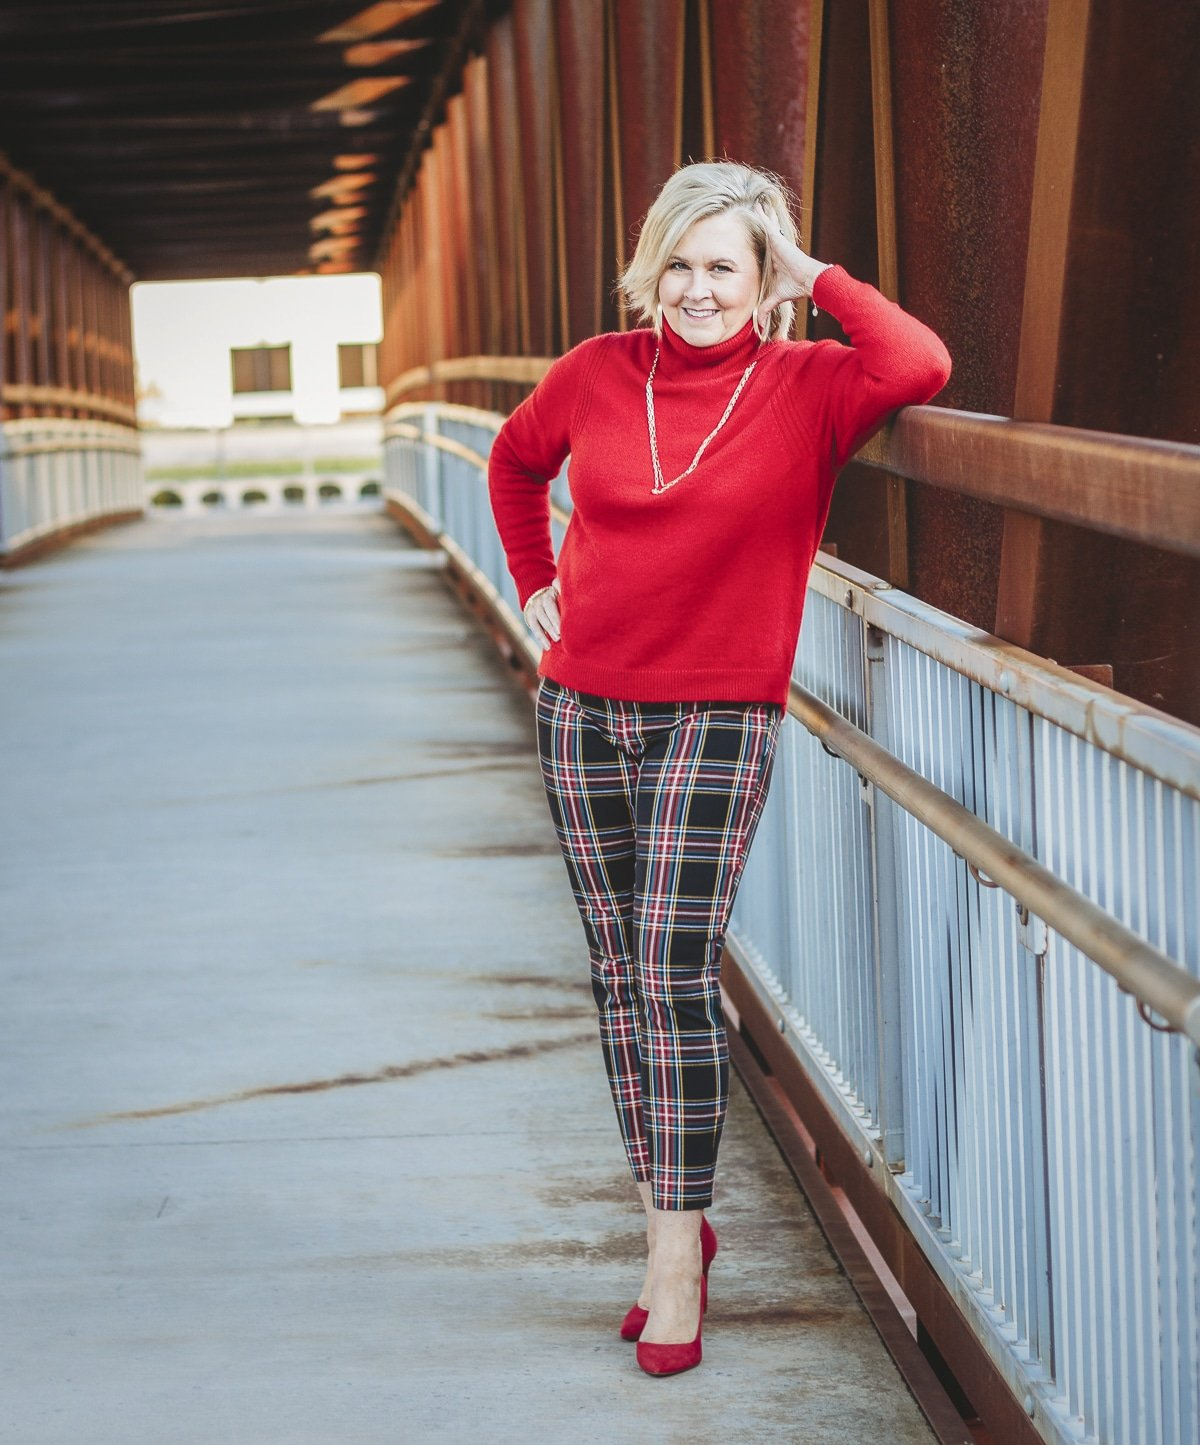 Fashion Blogger 50 Is Not Old is looking festive in this red turtleneck sweater and plaid pants with red pump heels